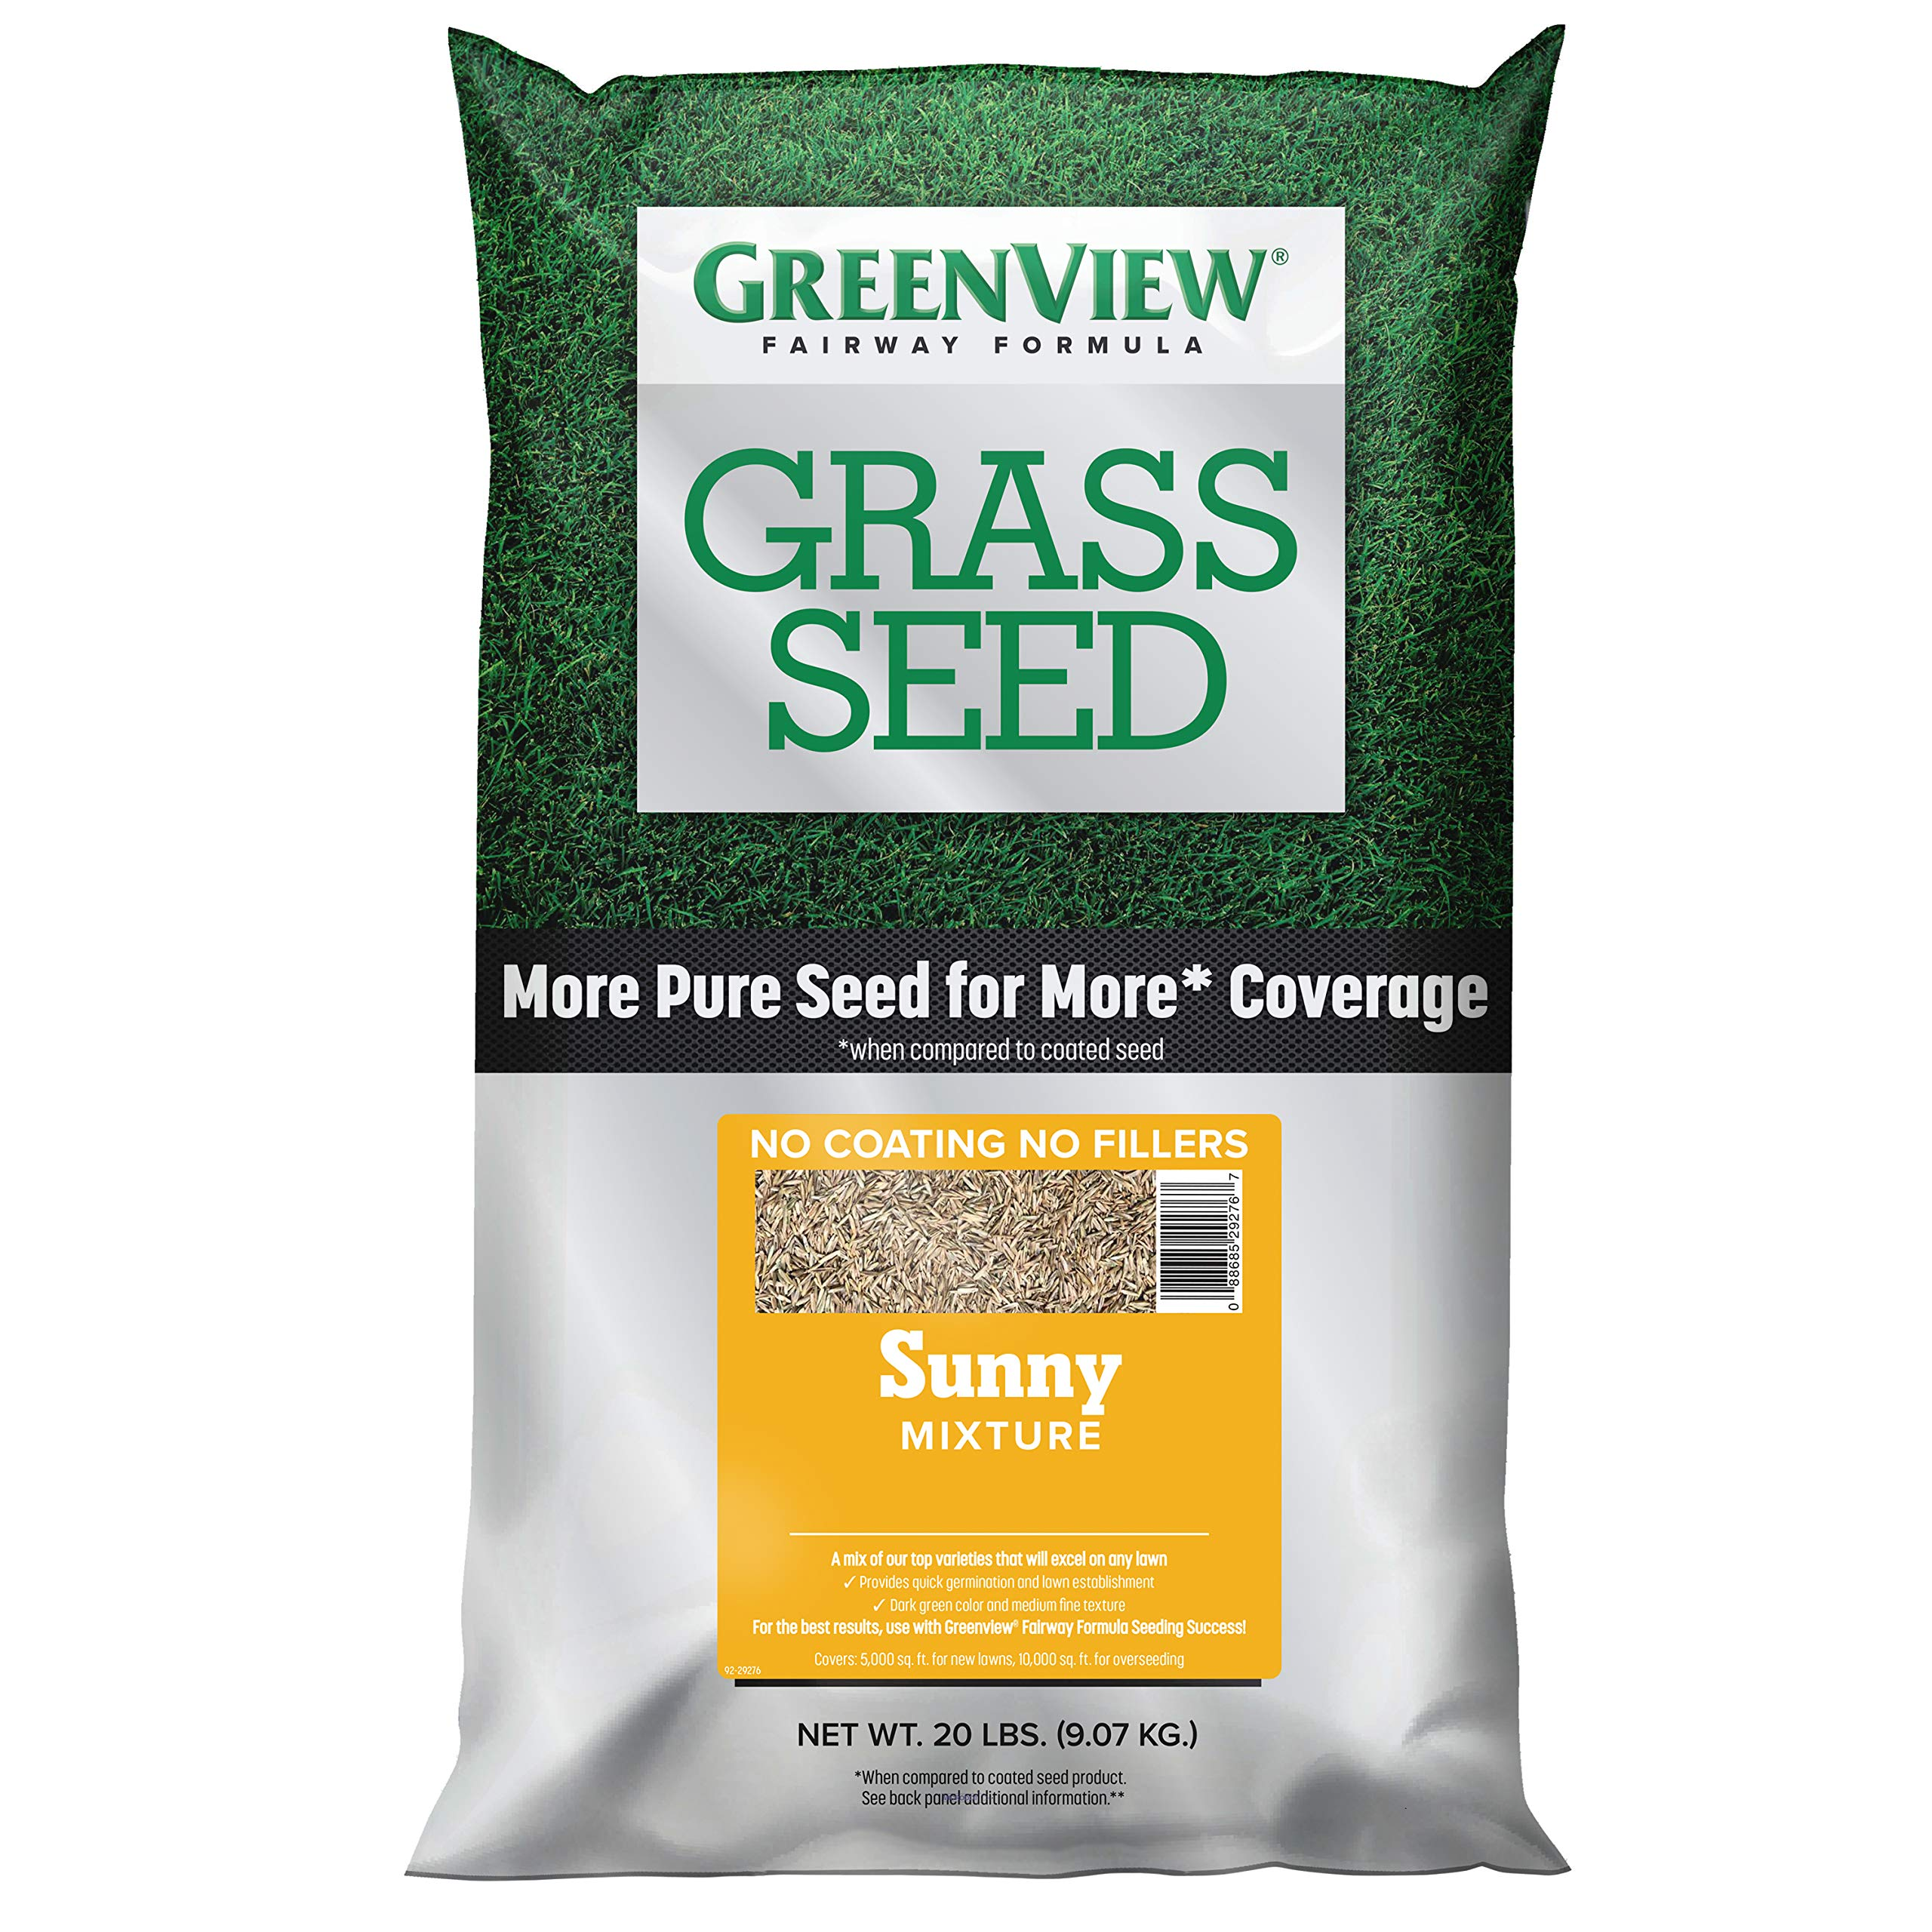 GreenView 2829341  Fairway Formula Grass Seed Sunny Mixture - 20 lb. by GreenView